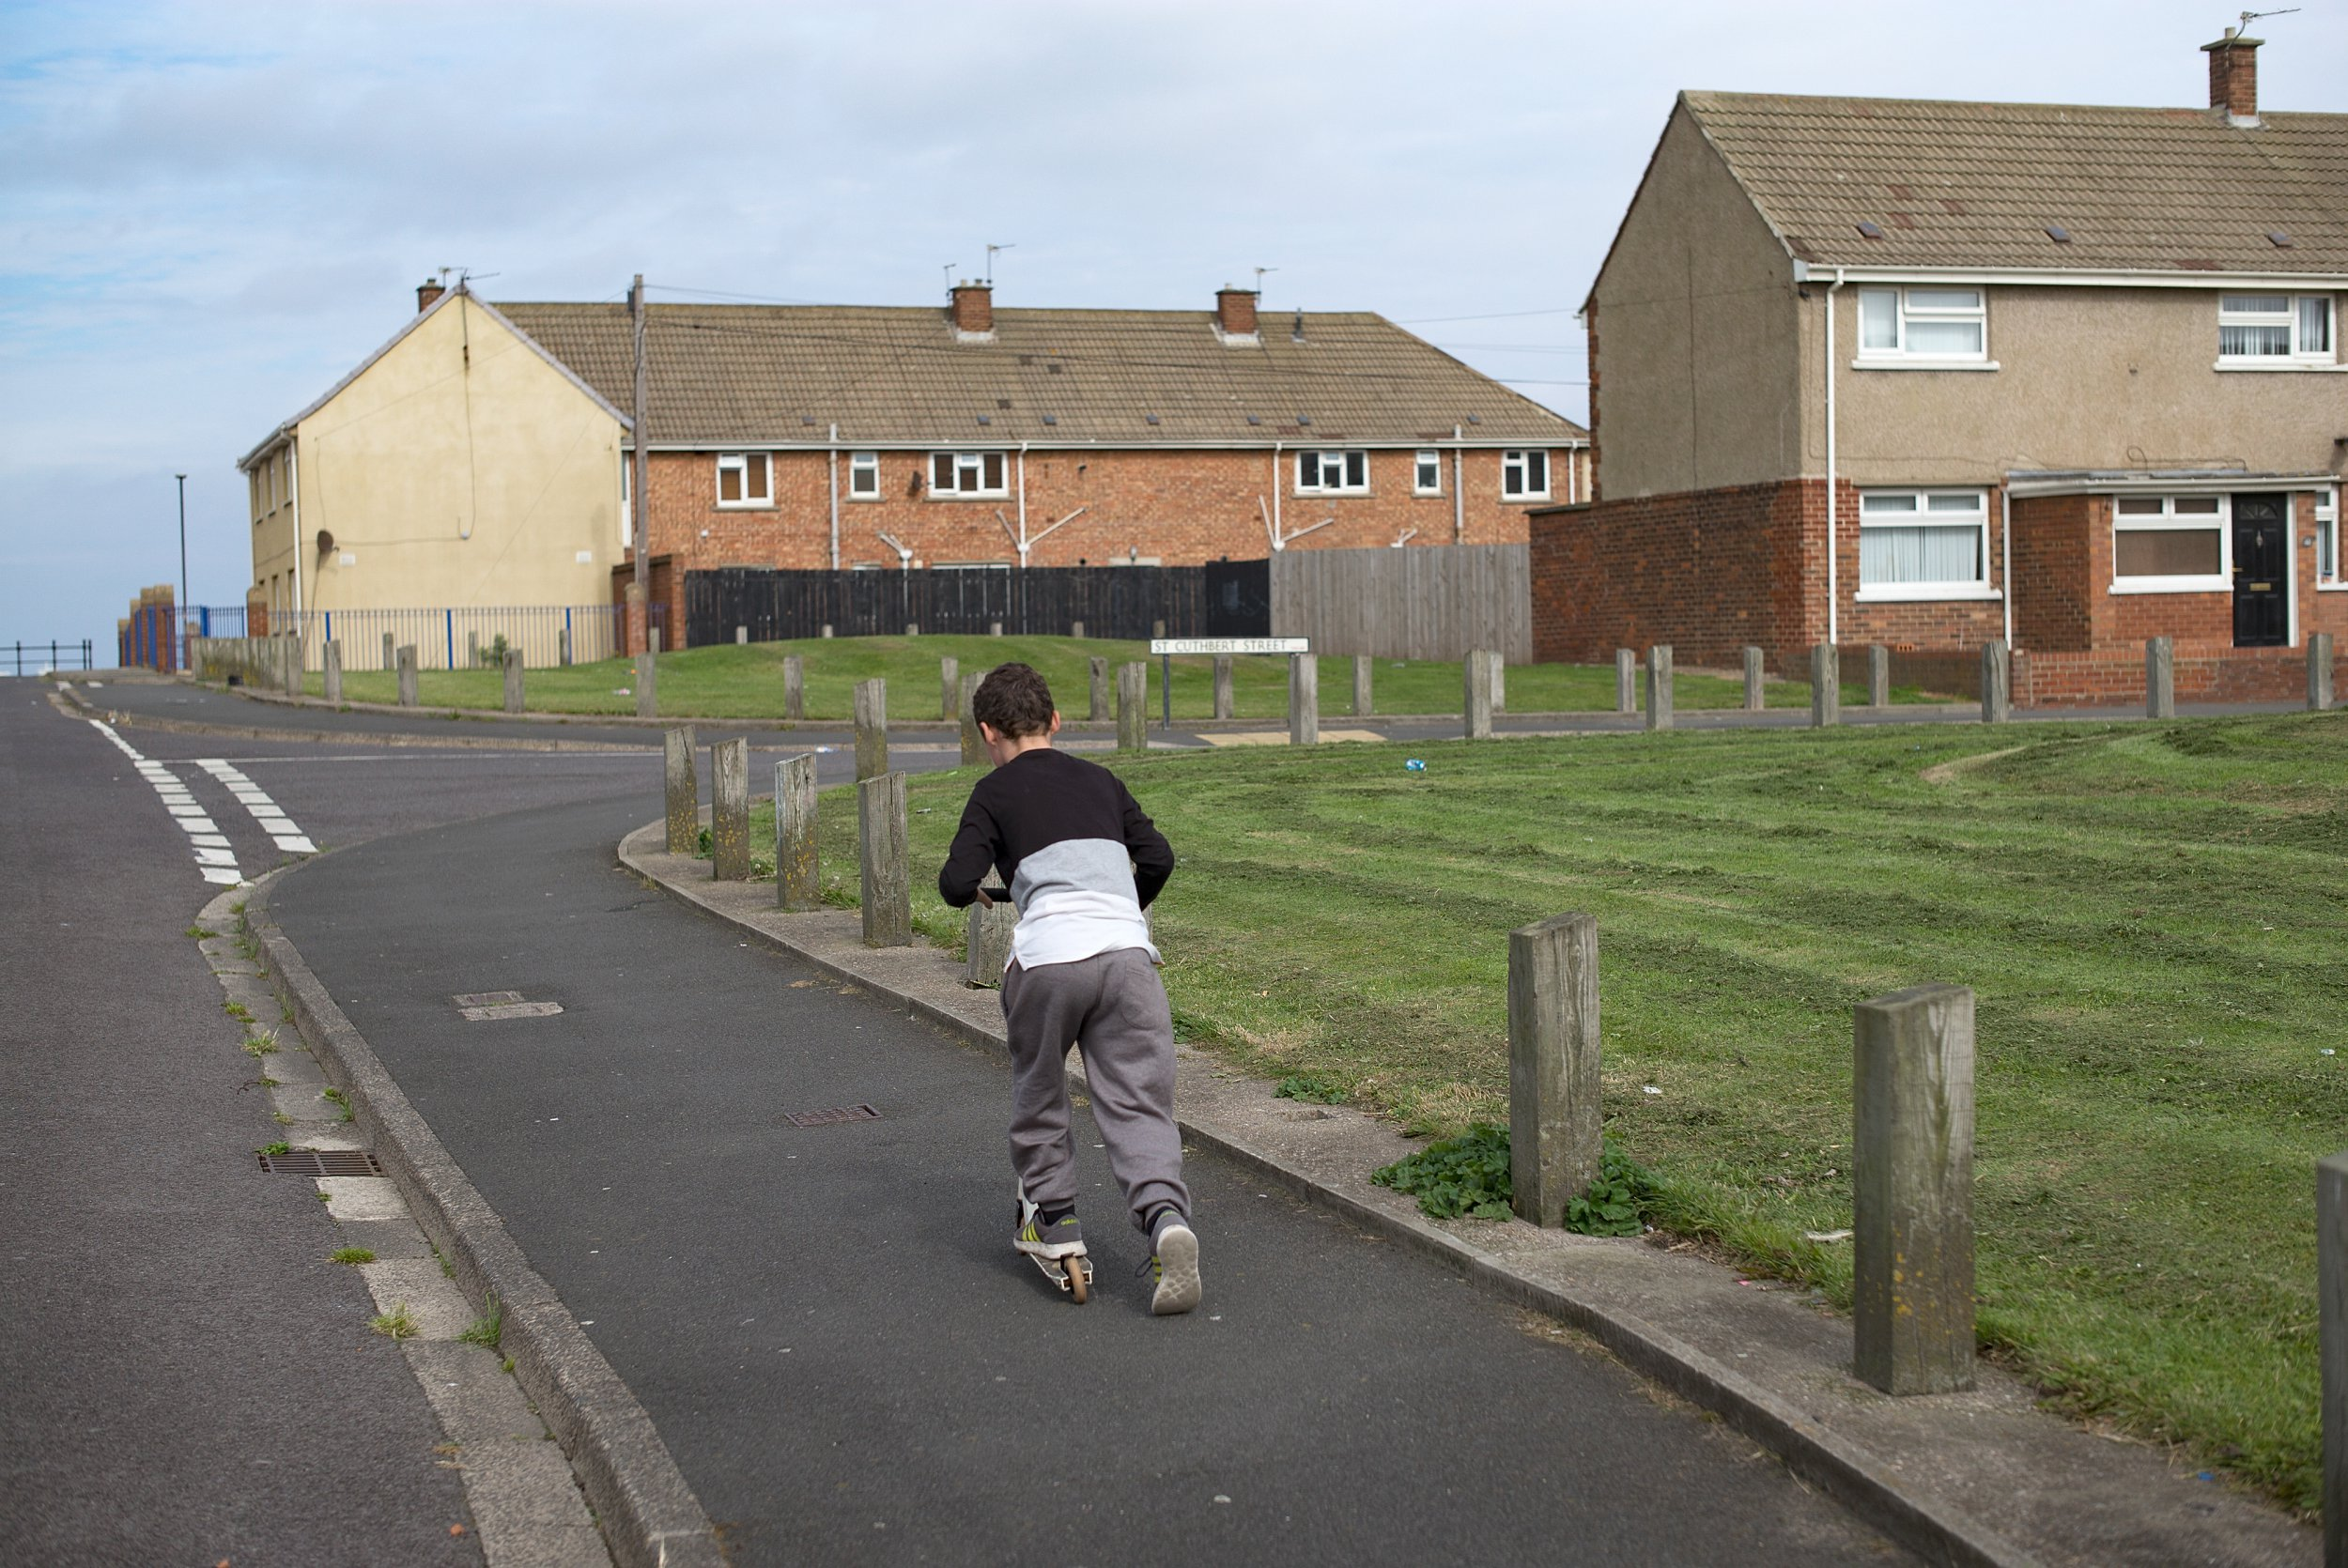 HARTLEPOOL, ENGLAND - SEPTEMBER 04: Children play on the streets of the Headlands area of Hartlepool on September 4, 2017 in Hartlepool, England. Hartlepool in the North East of England is one of the many coastal towns lagging behind inland areas with some of the worst levels of economic and social deprivation in the country. The Social Market Foundation (SMF) found that 85% of Great Britain's 98 coastal local authorities had pay levels below the national average for 2016. The government has announced that it will give 40 million GBP to encourage tourism and boost employment in the areas. (Photo by Christopher Furlong/Getty Images)